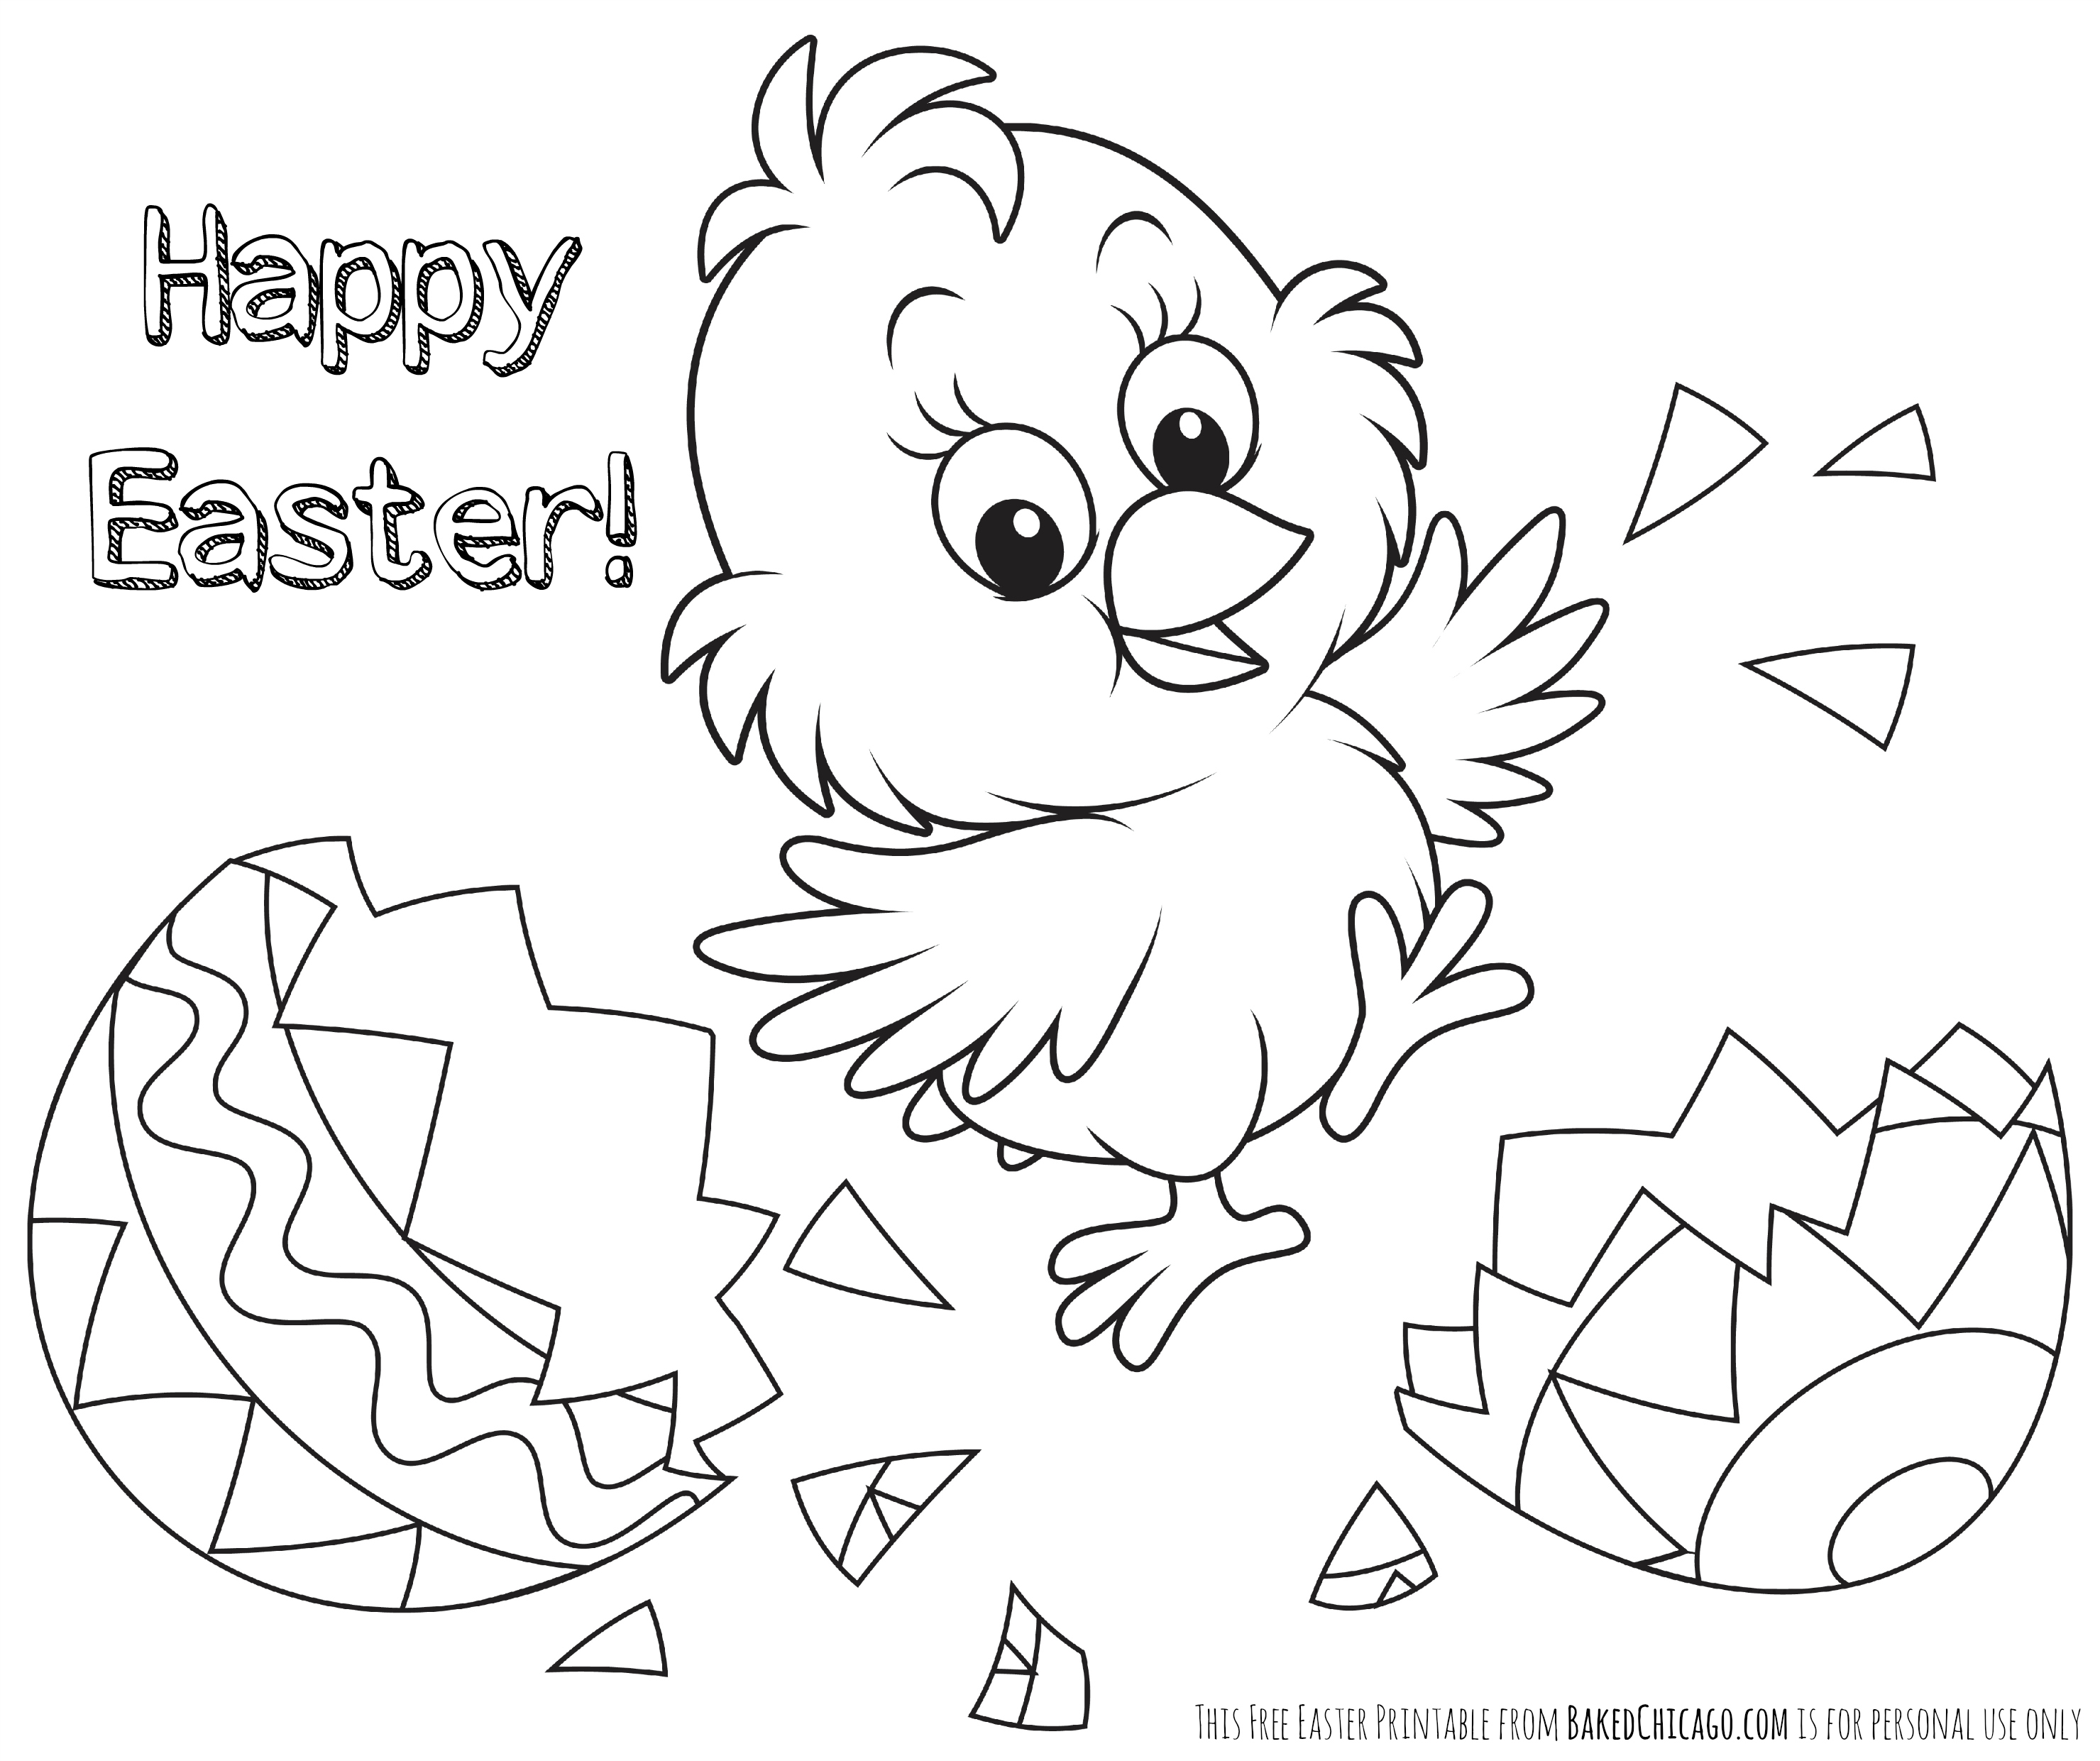 Coloring Pages To Print Easter : Free coloring pages of olaf happy easter